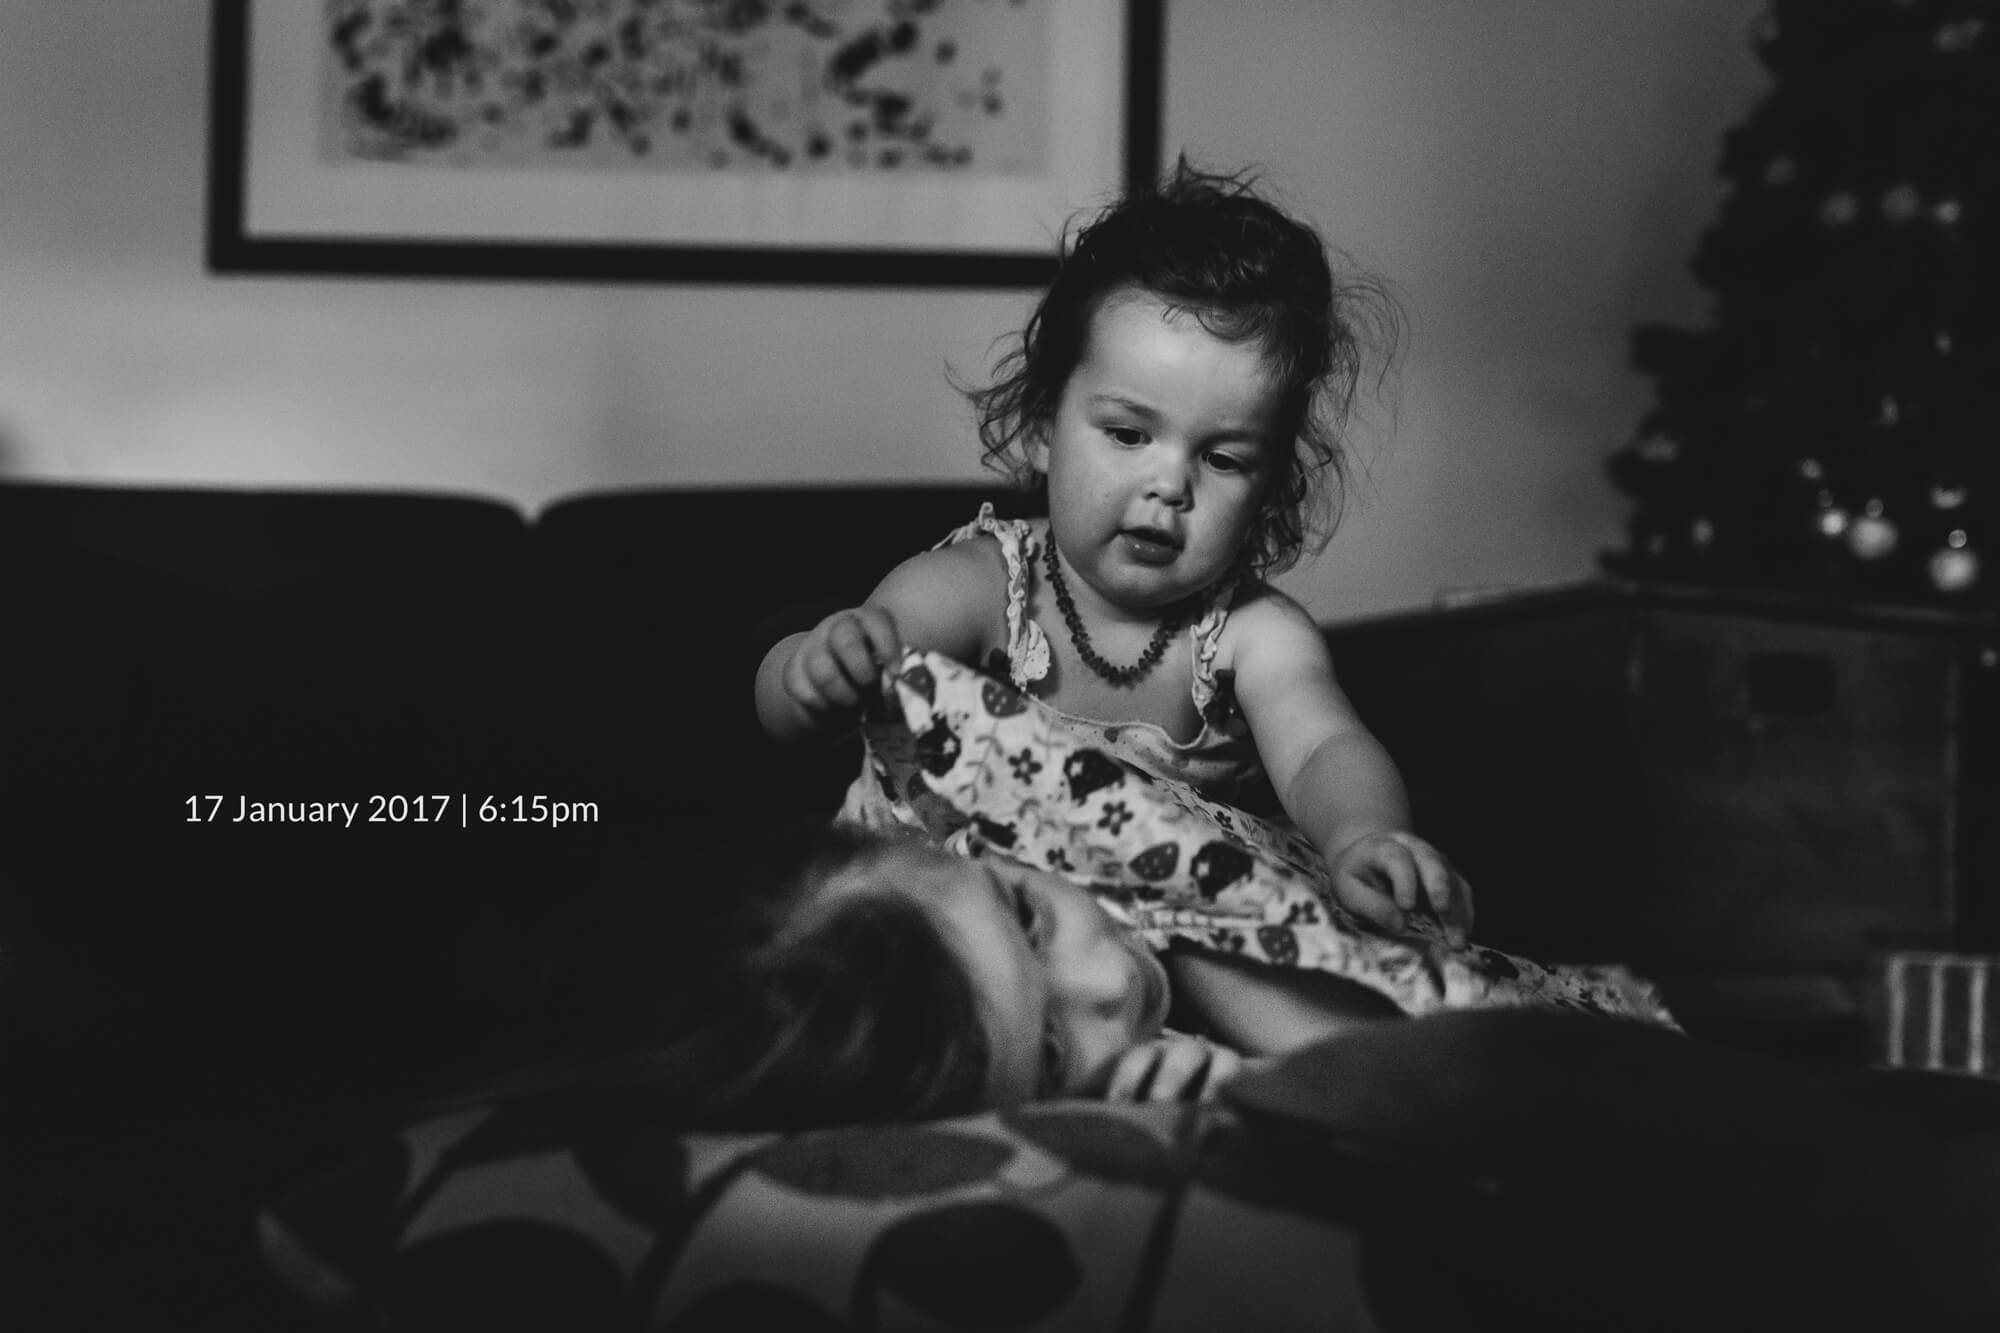 Melbourne lifestyle family photography. Black and white portrait of a toddler.